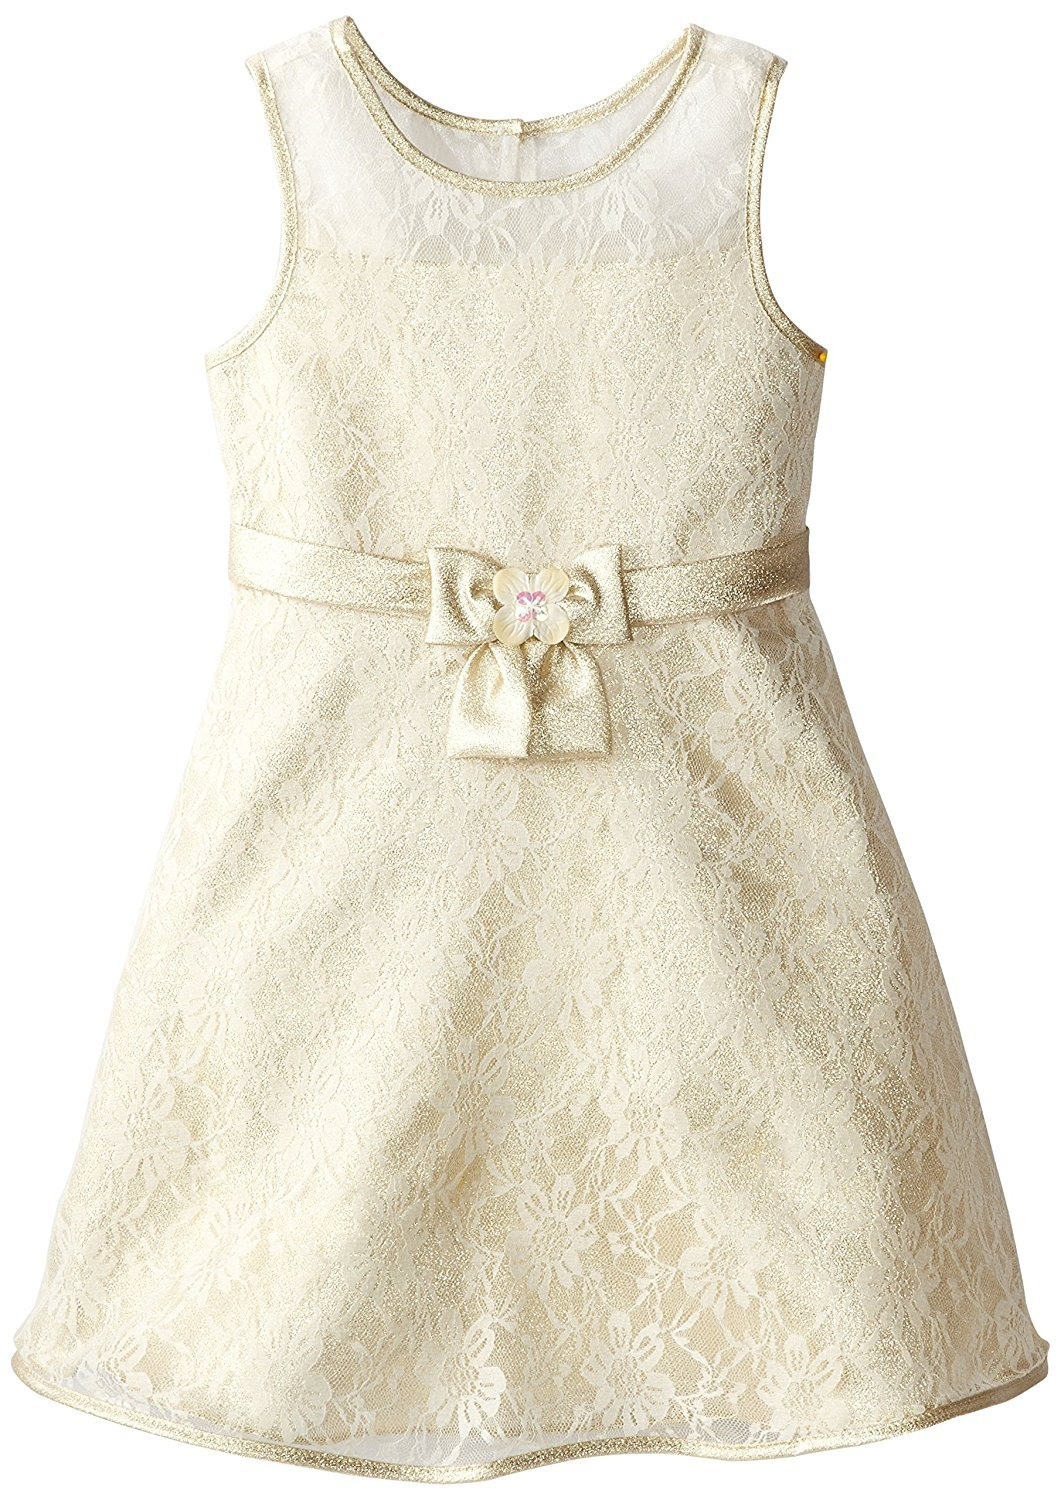 Bonnie Jean Big Girl Tween 7-16 Metallic Gold Ivory Floral Lace Fit Flare Dress